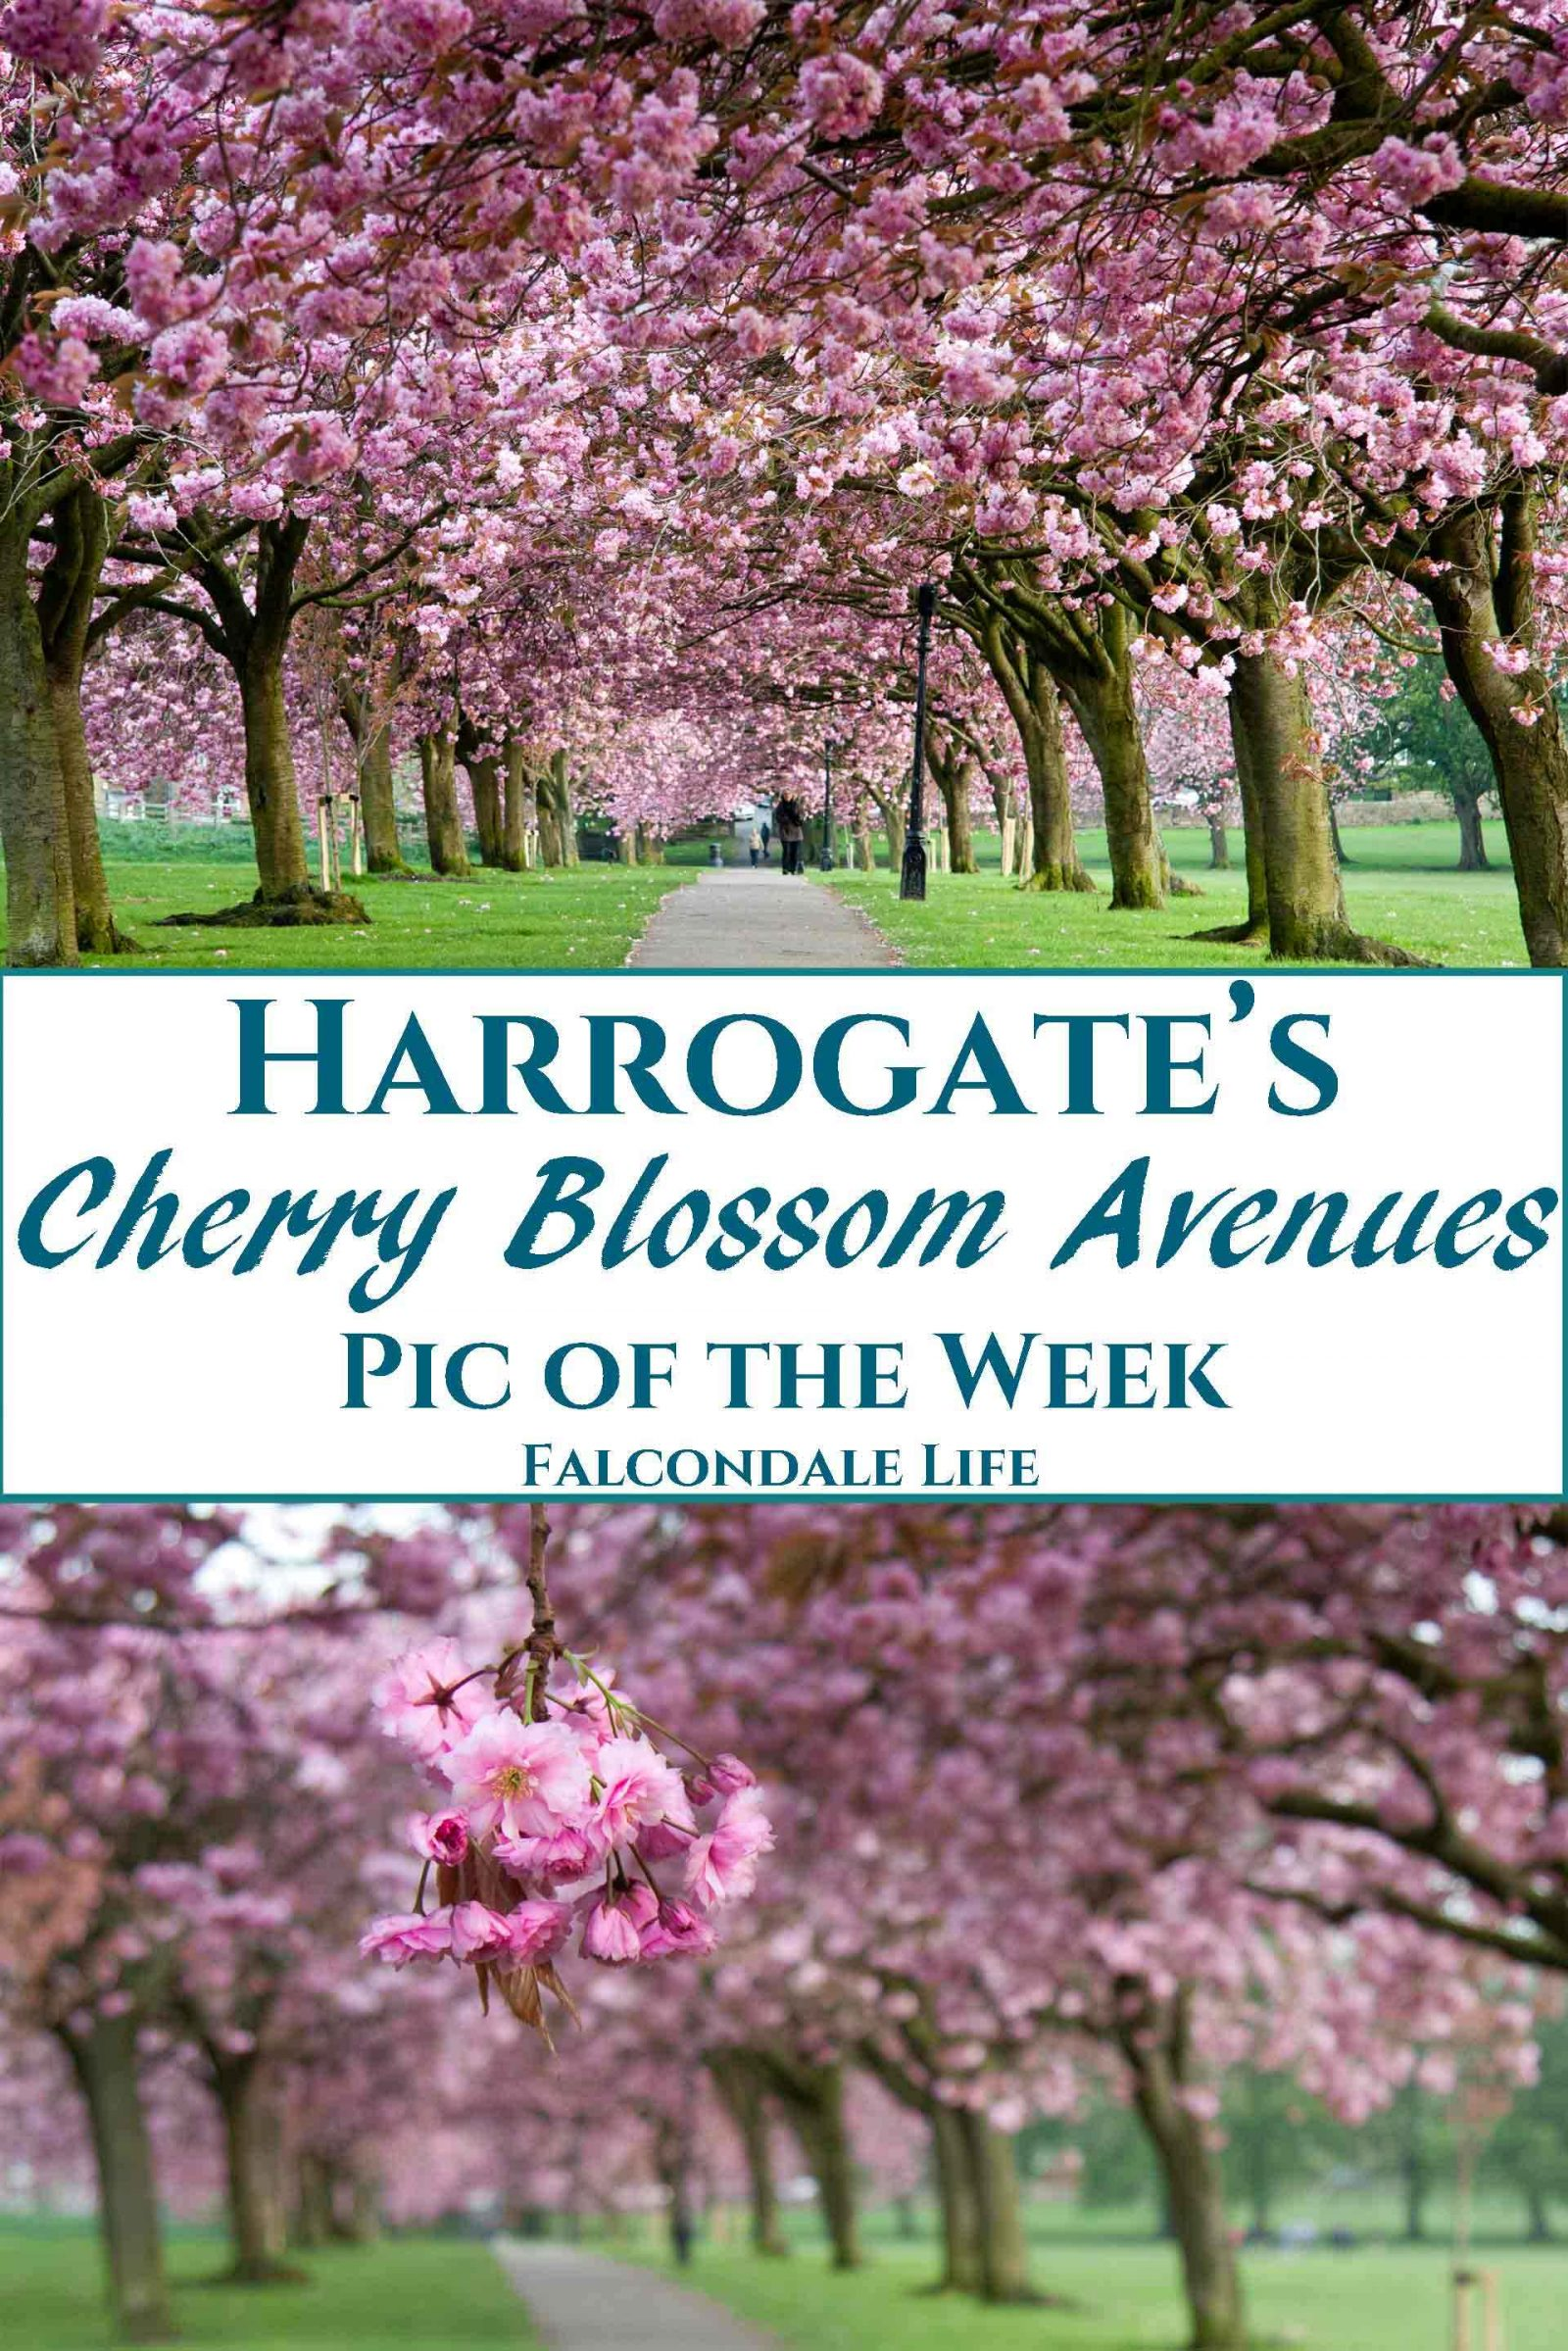 A popular North Yorkshire tourist attraction in the spring are Harrogate's cherry blossom avenues on the Stray. These stunning long avenues are a great place to take photos and enjoy a visit to this charming spa town. Photography tips, travel and parking information. Harrogate's Cherry Blossom Avenues on Falcondale Life blog. Image description: Pink cherry blossom trees.